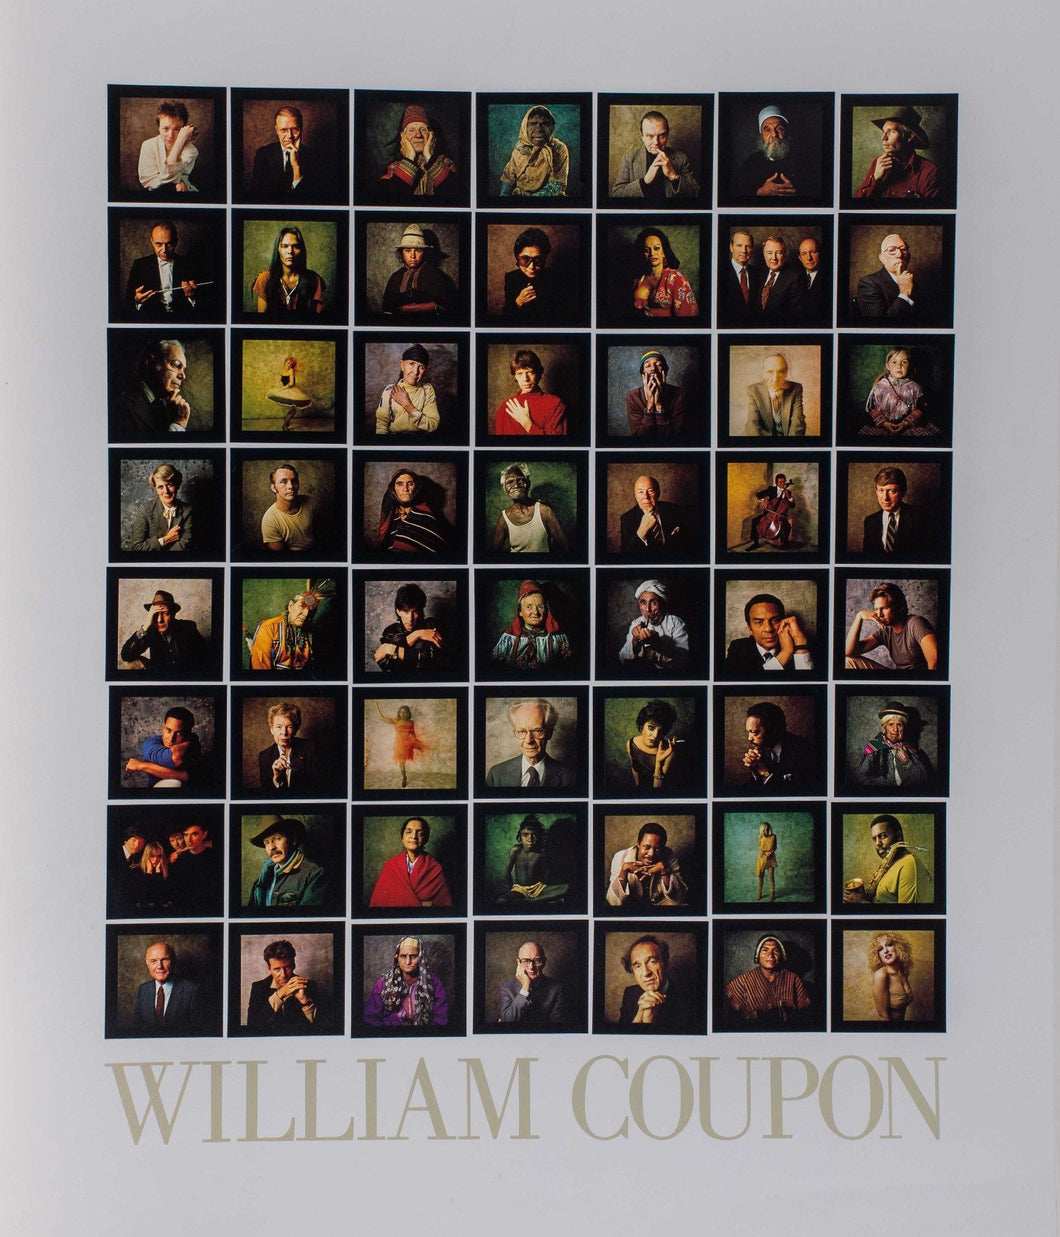 Coupon, William ''Portraits of the Greats'' 25.5x20